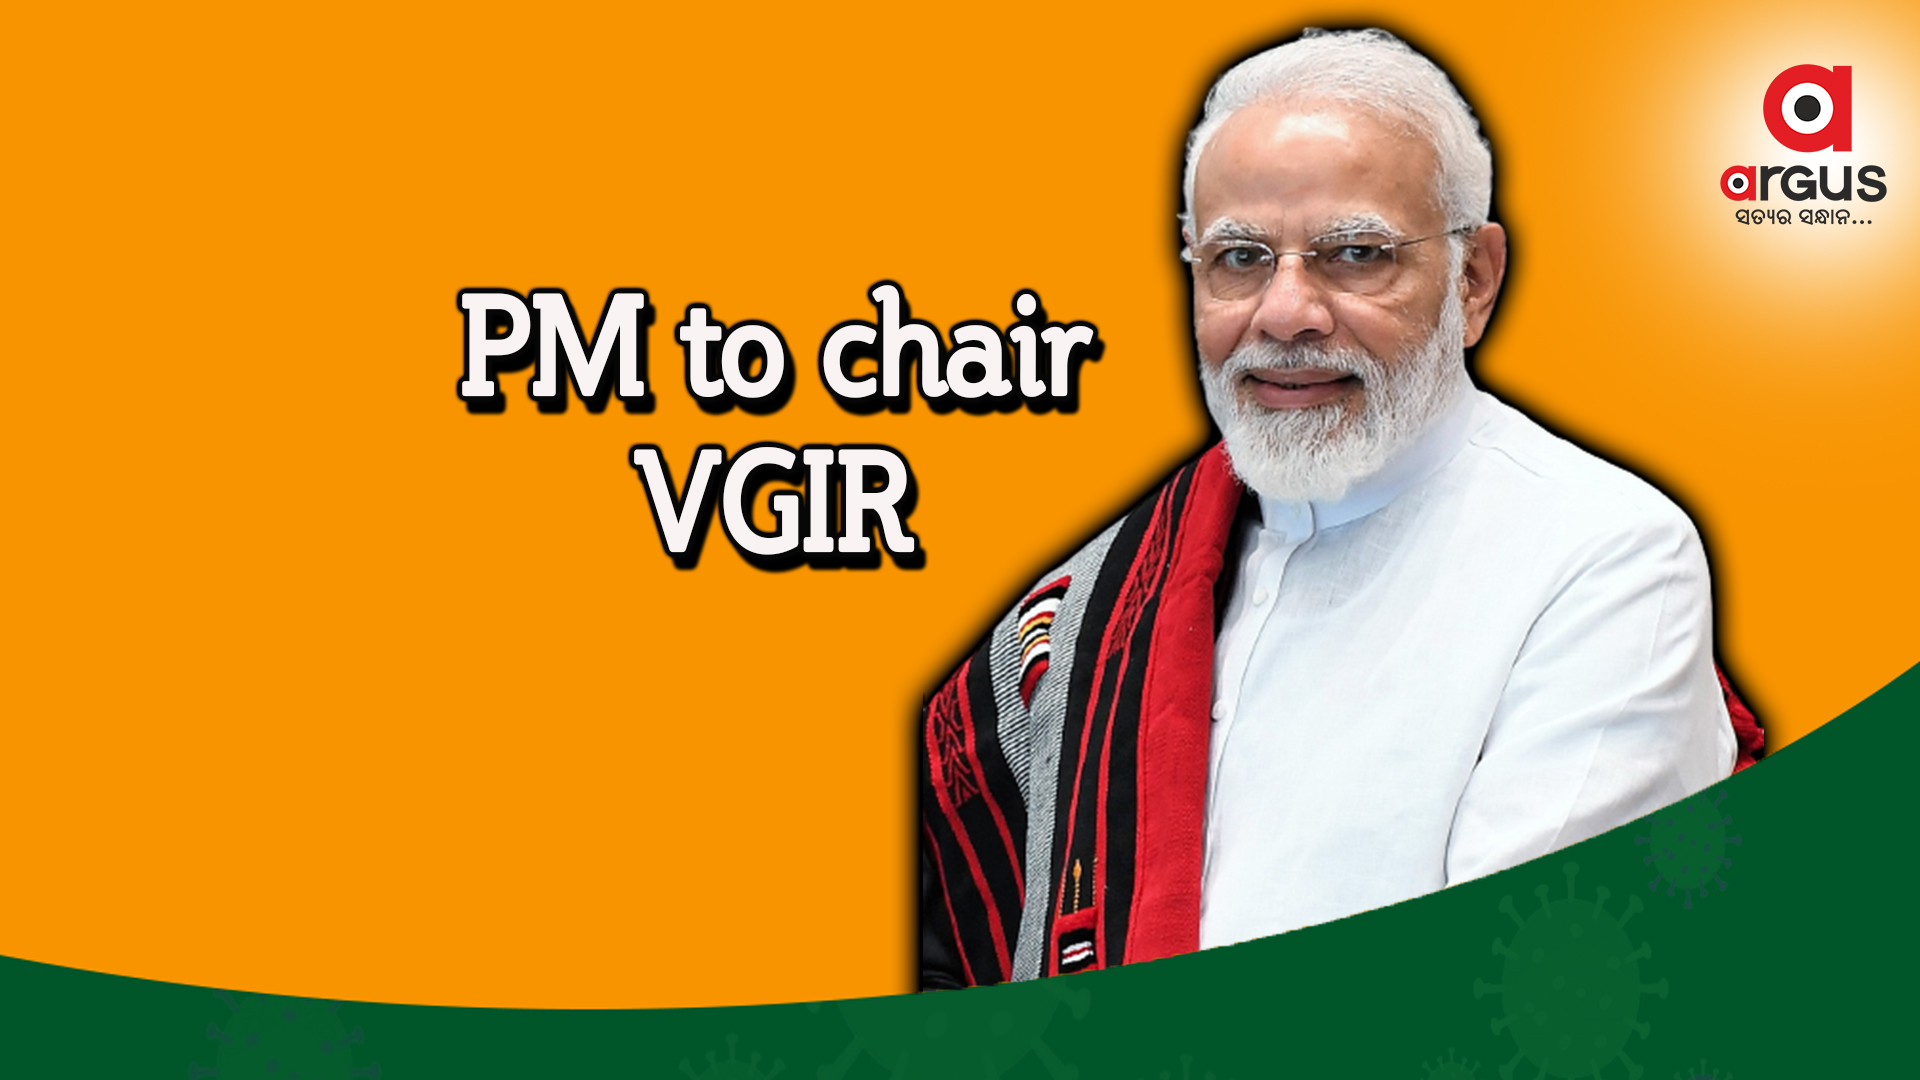 PM to chair Virtual Global Investor Roundtable on Nov 5